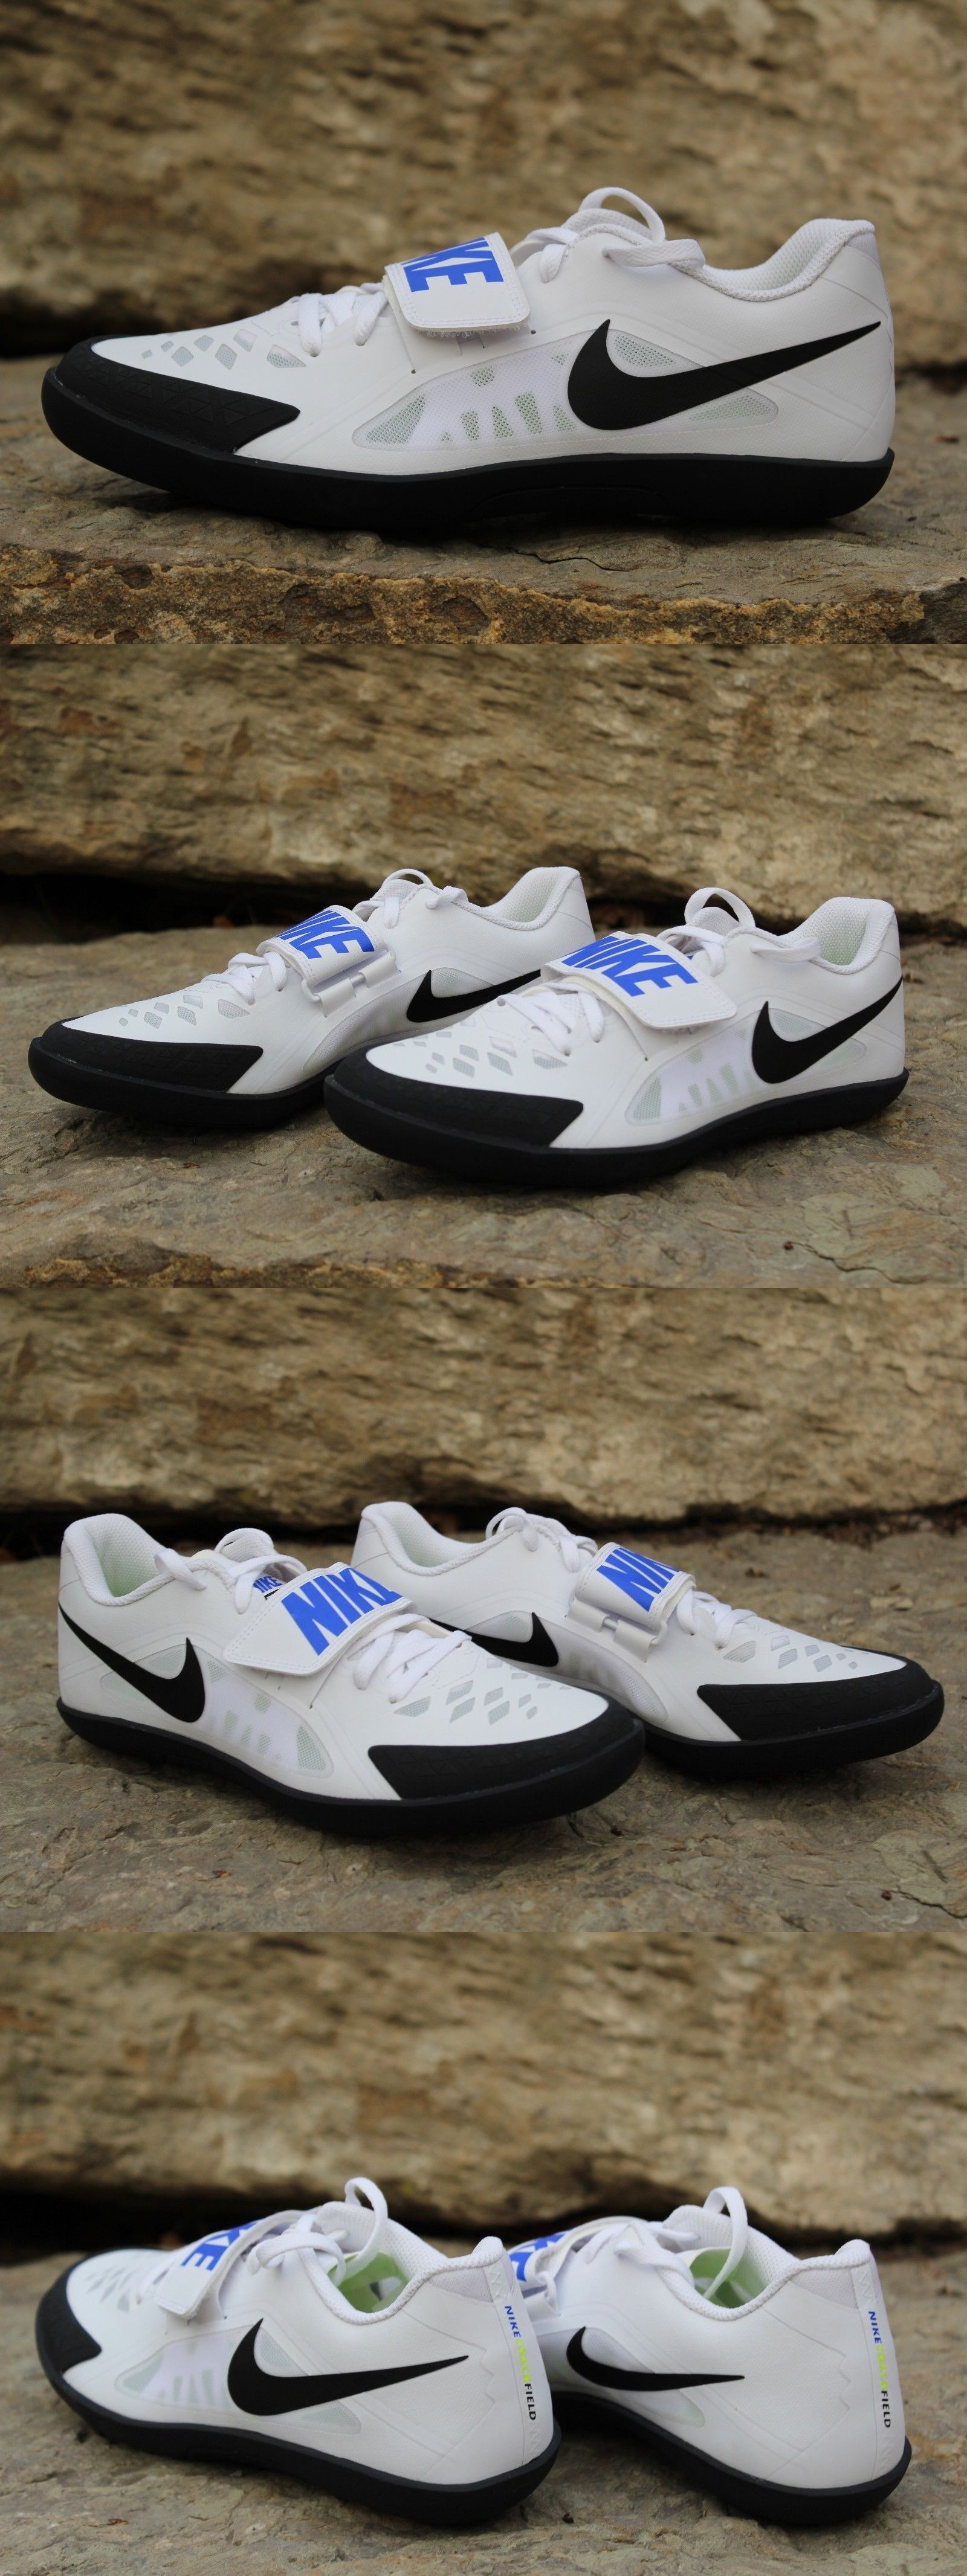 Track and Field 106981: 15 New Mens Nike Zoom Rival Sd 2 Shot Put Discus